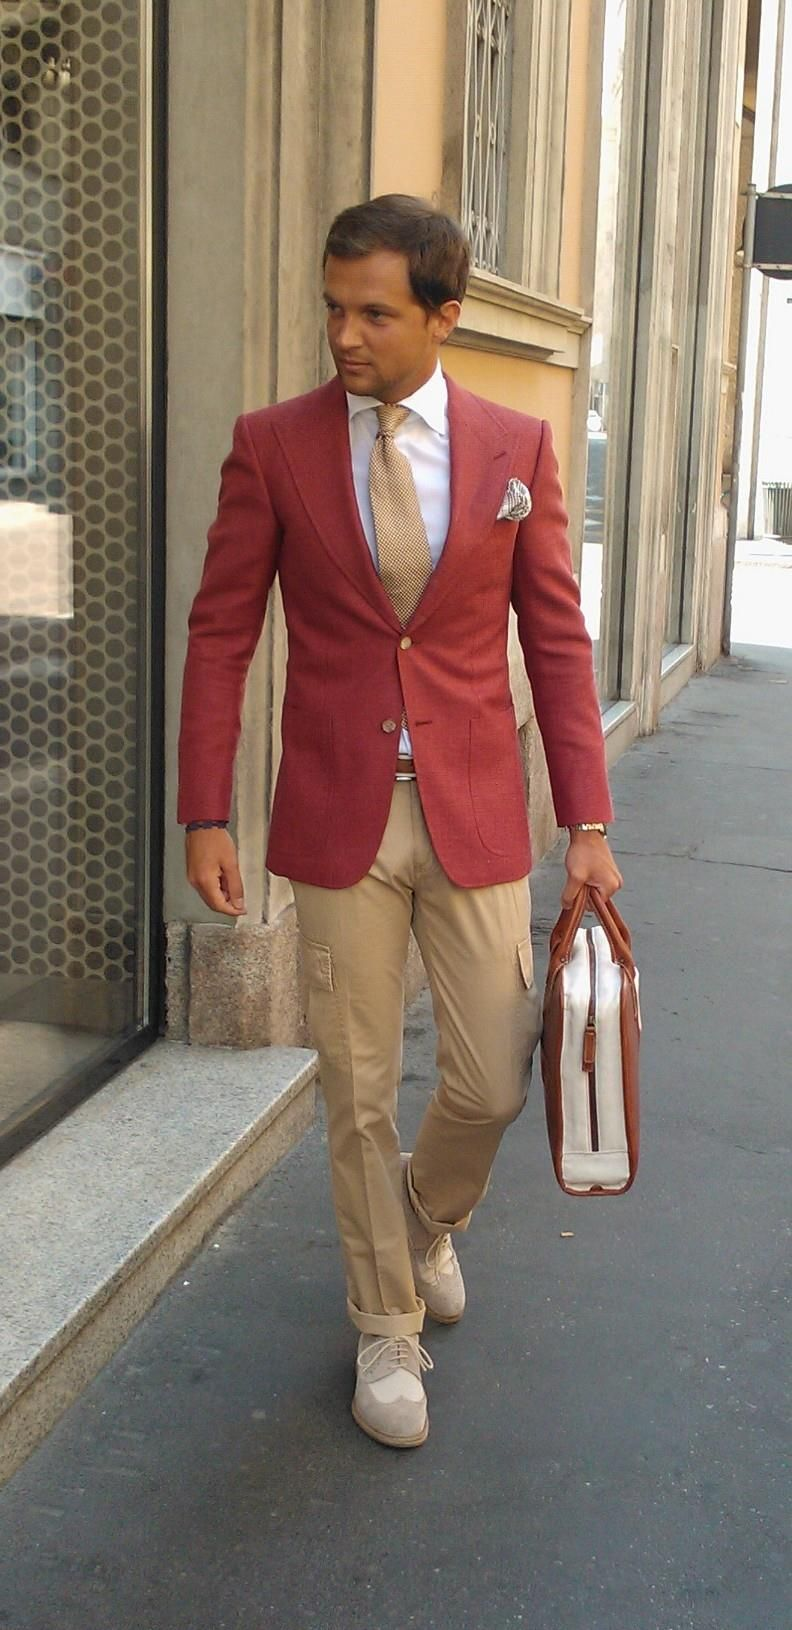 RED JACKET   CARGO PANTS | Dapperness - Men's Style | Pinterest ...